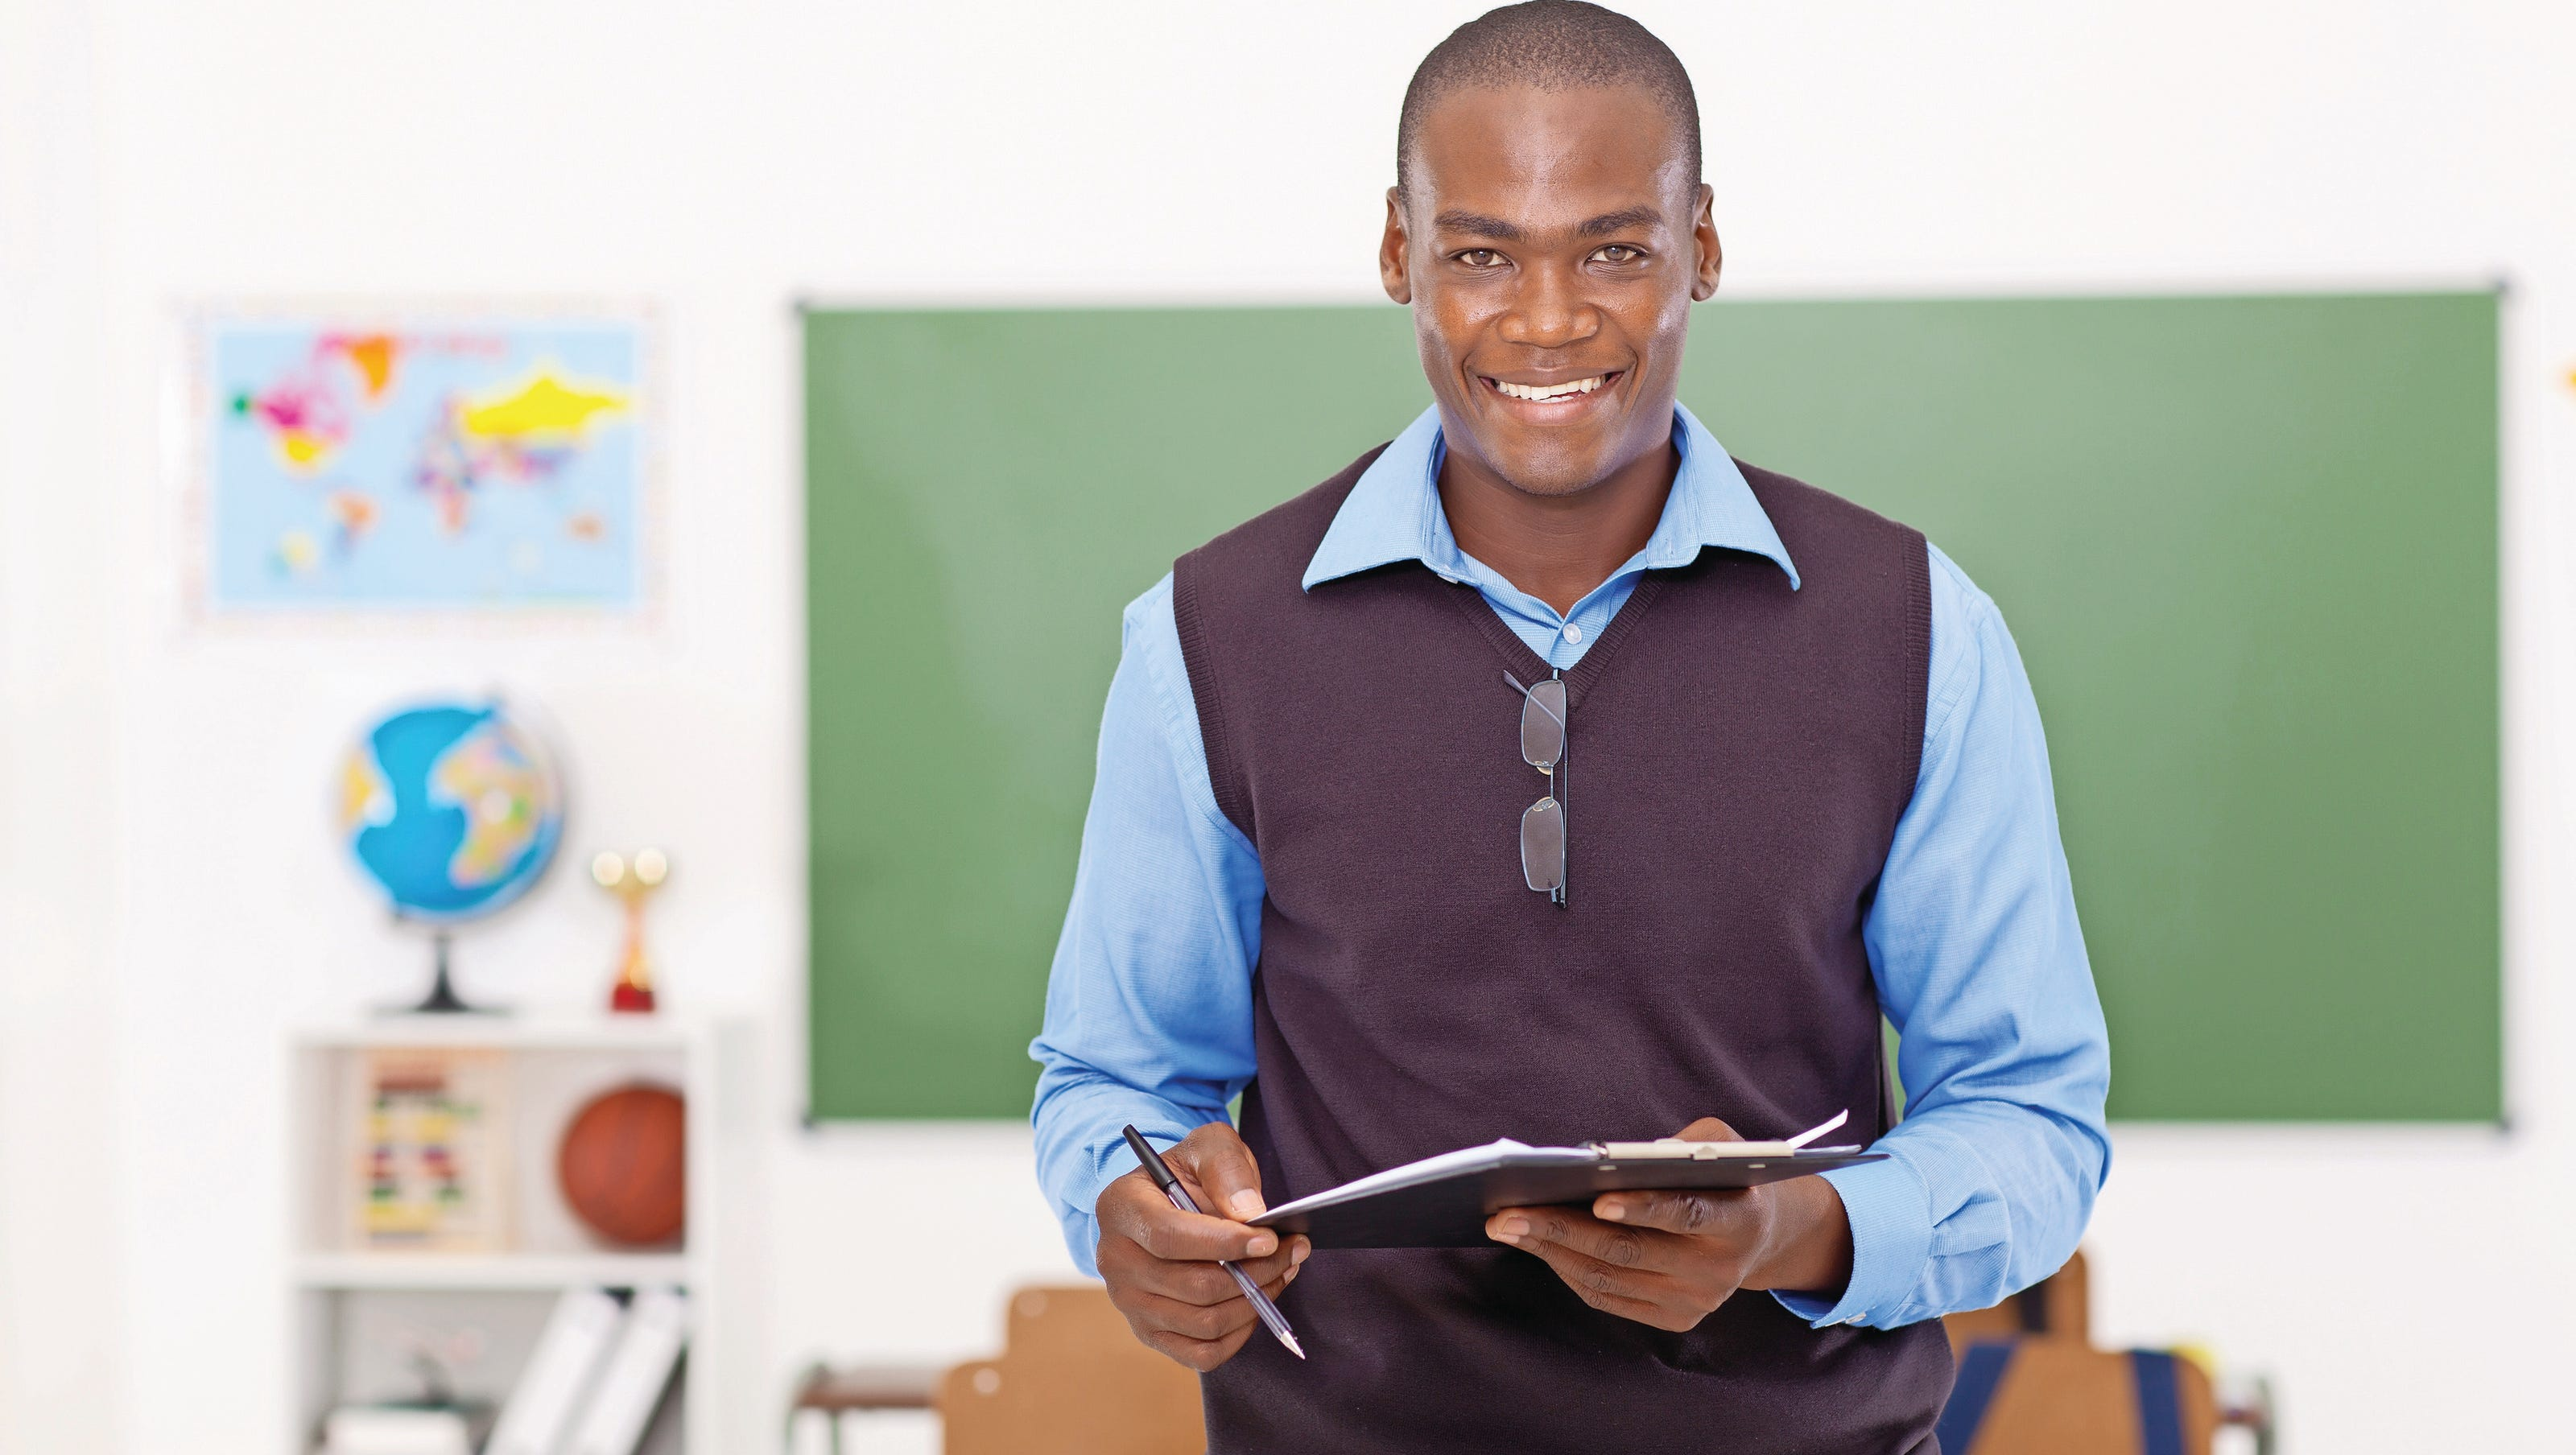 Male Teacher Shortage Affects Boys Who Need Role Models